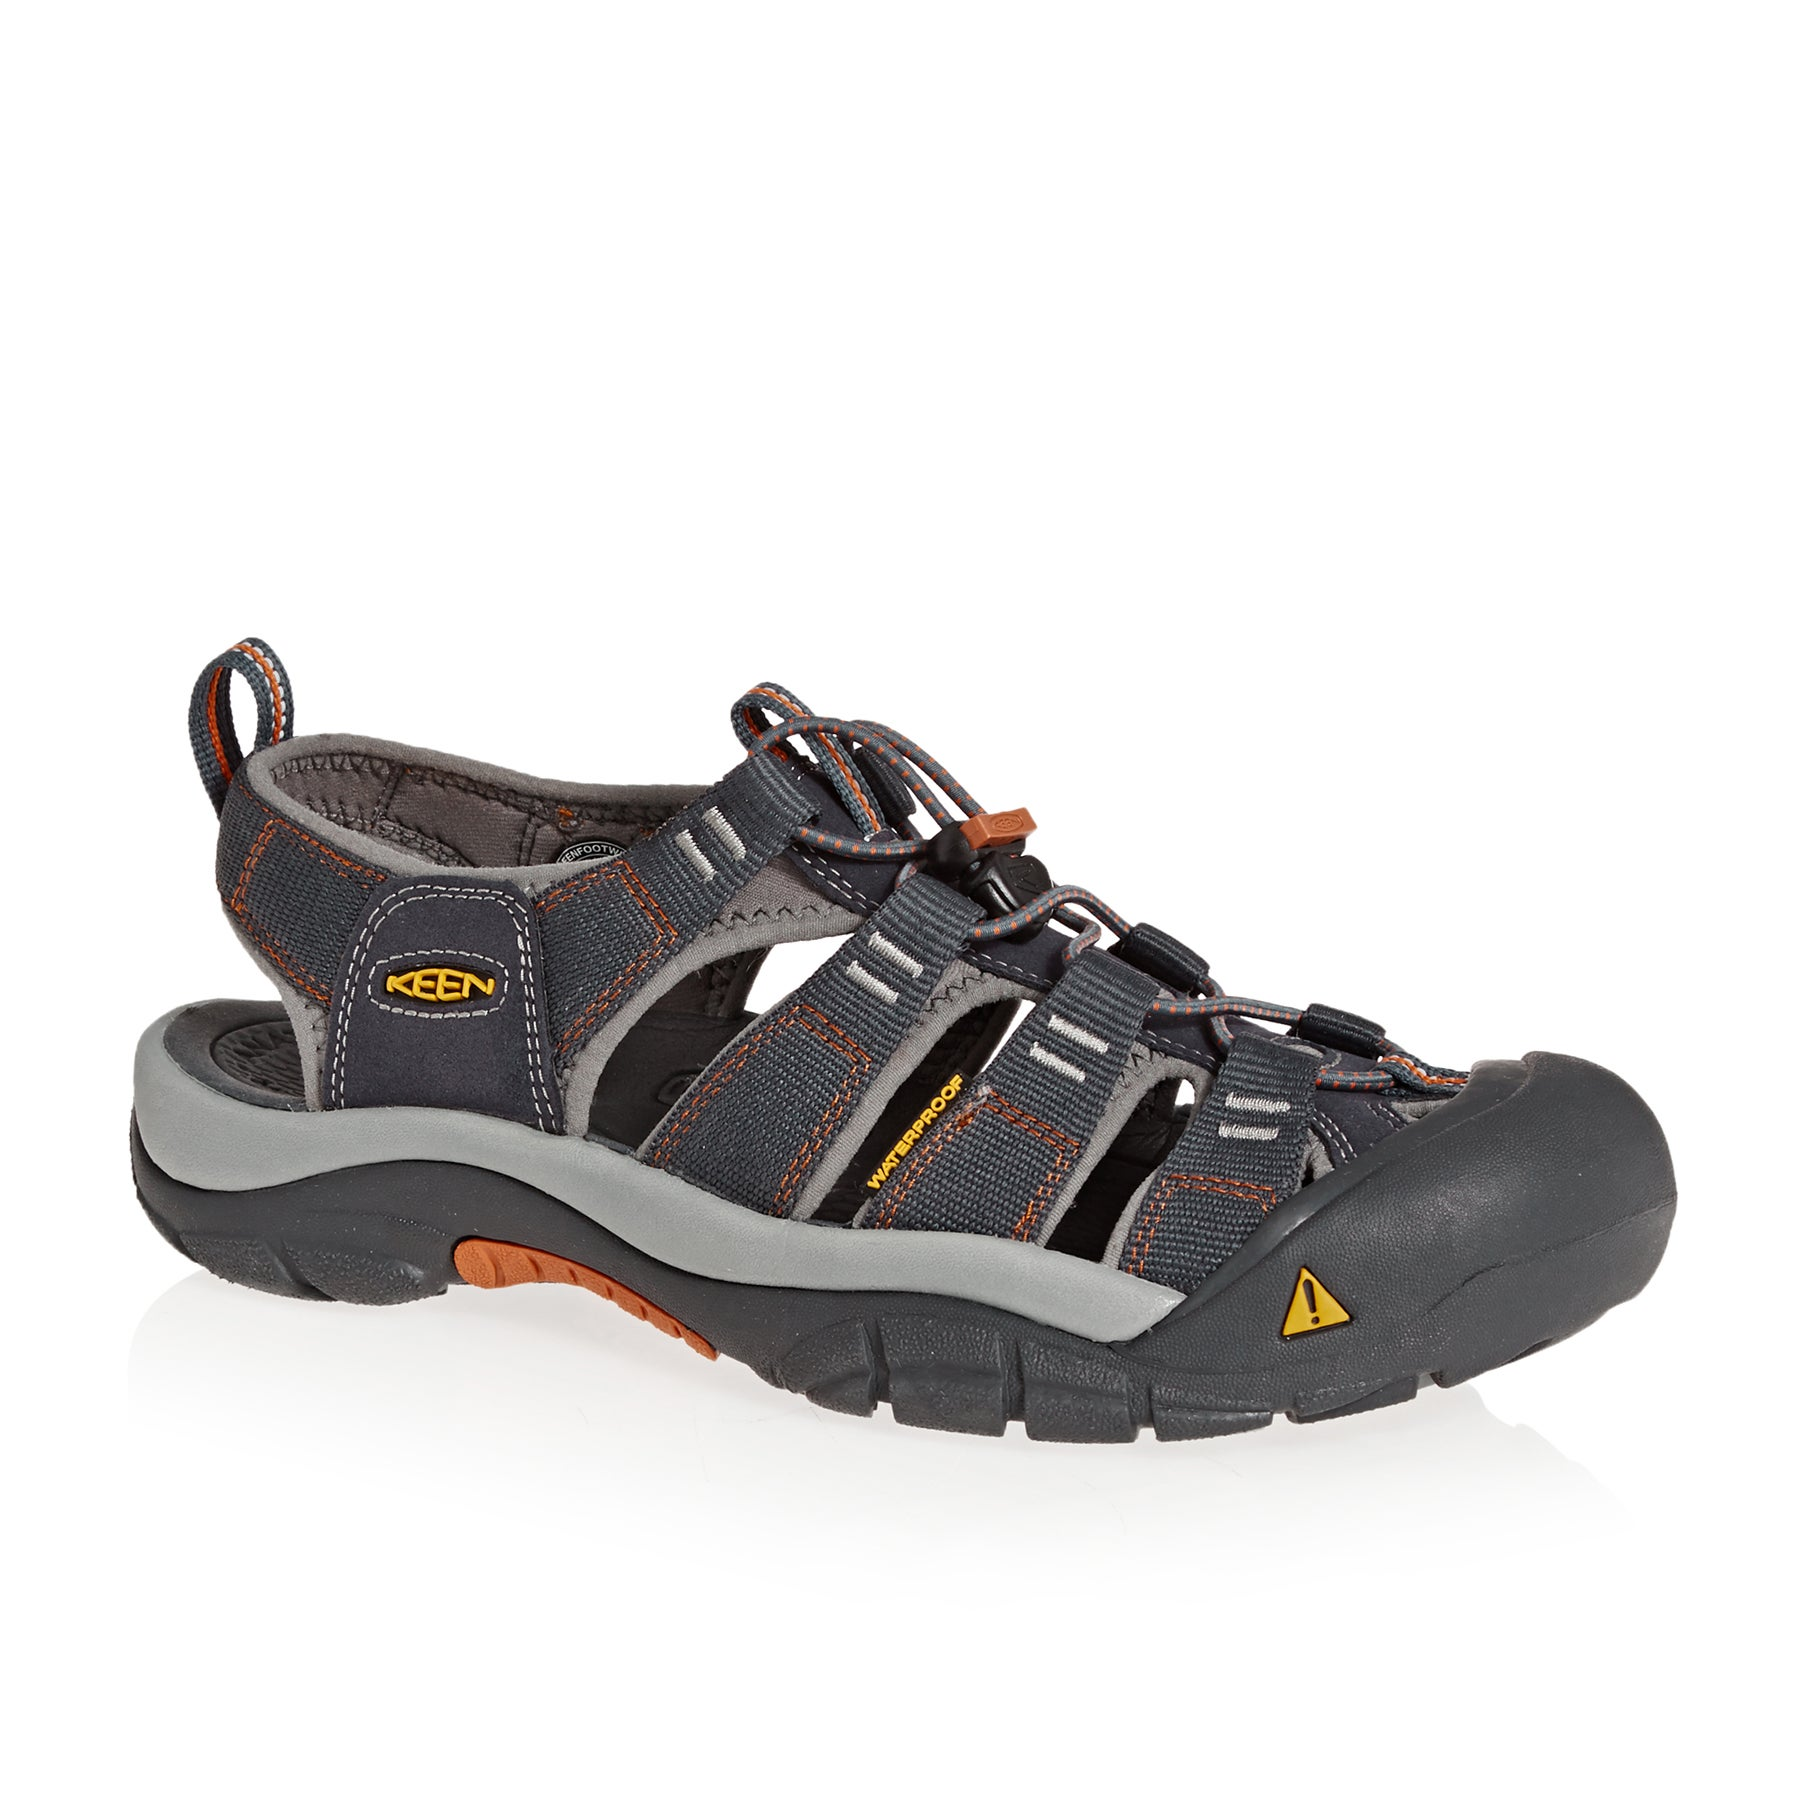 0b7ab12381 Keen Newport H2 Sandals available from Surfdome